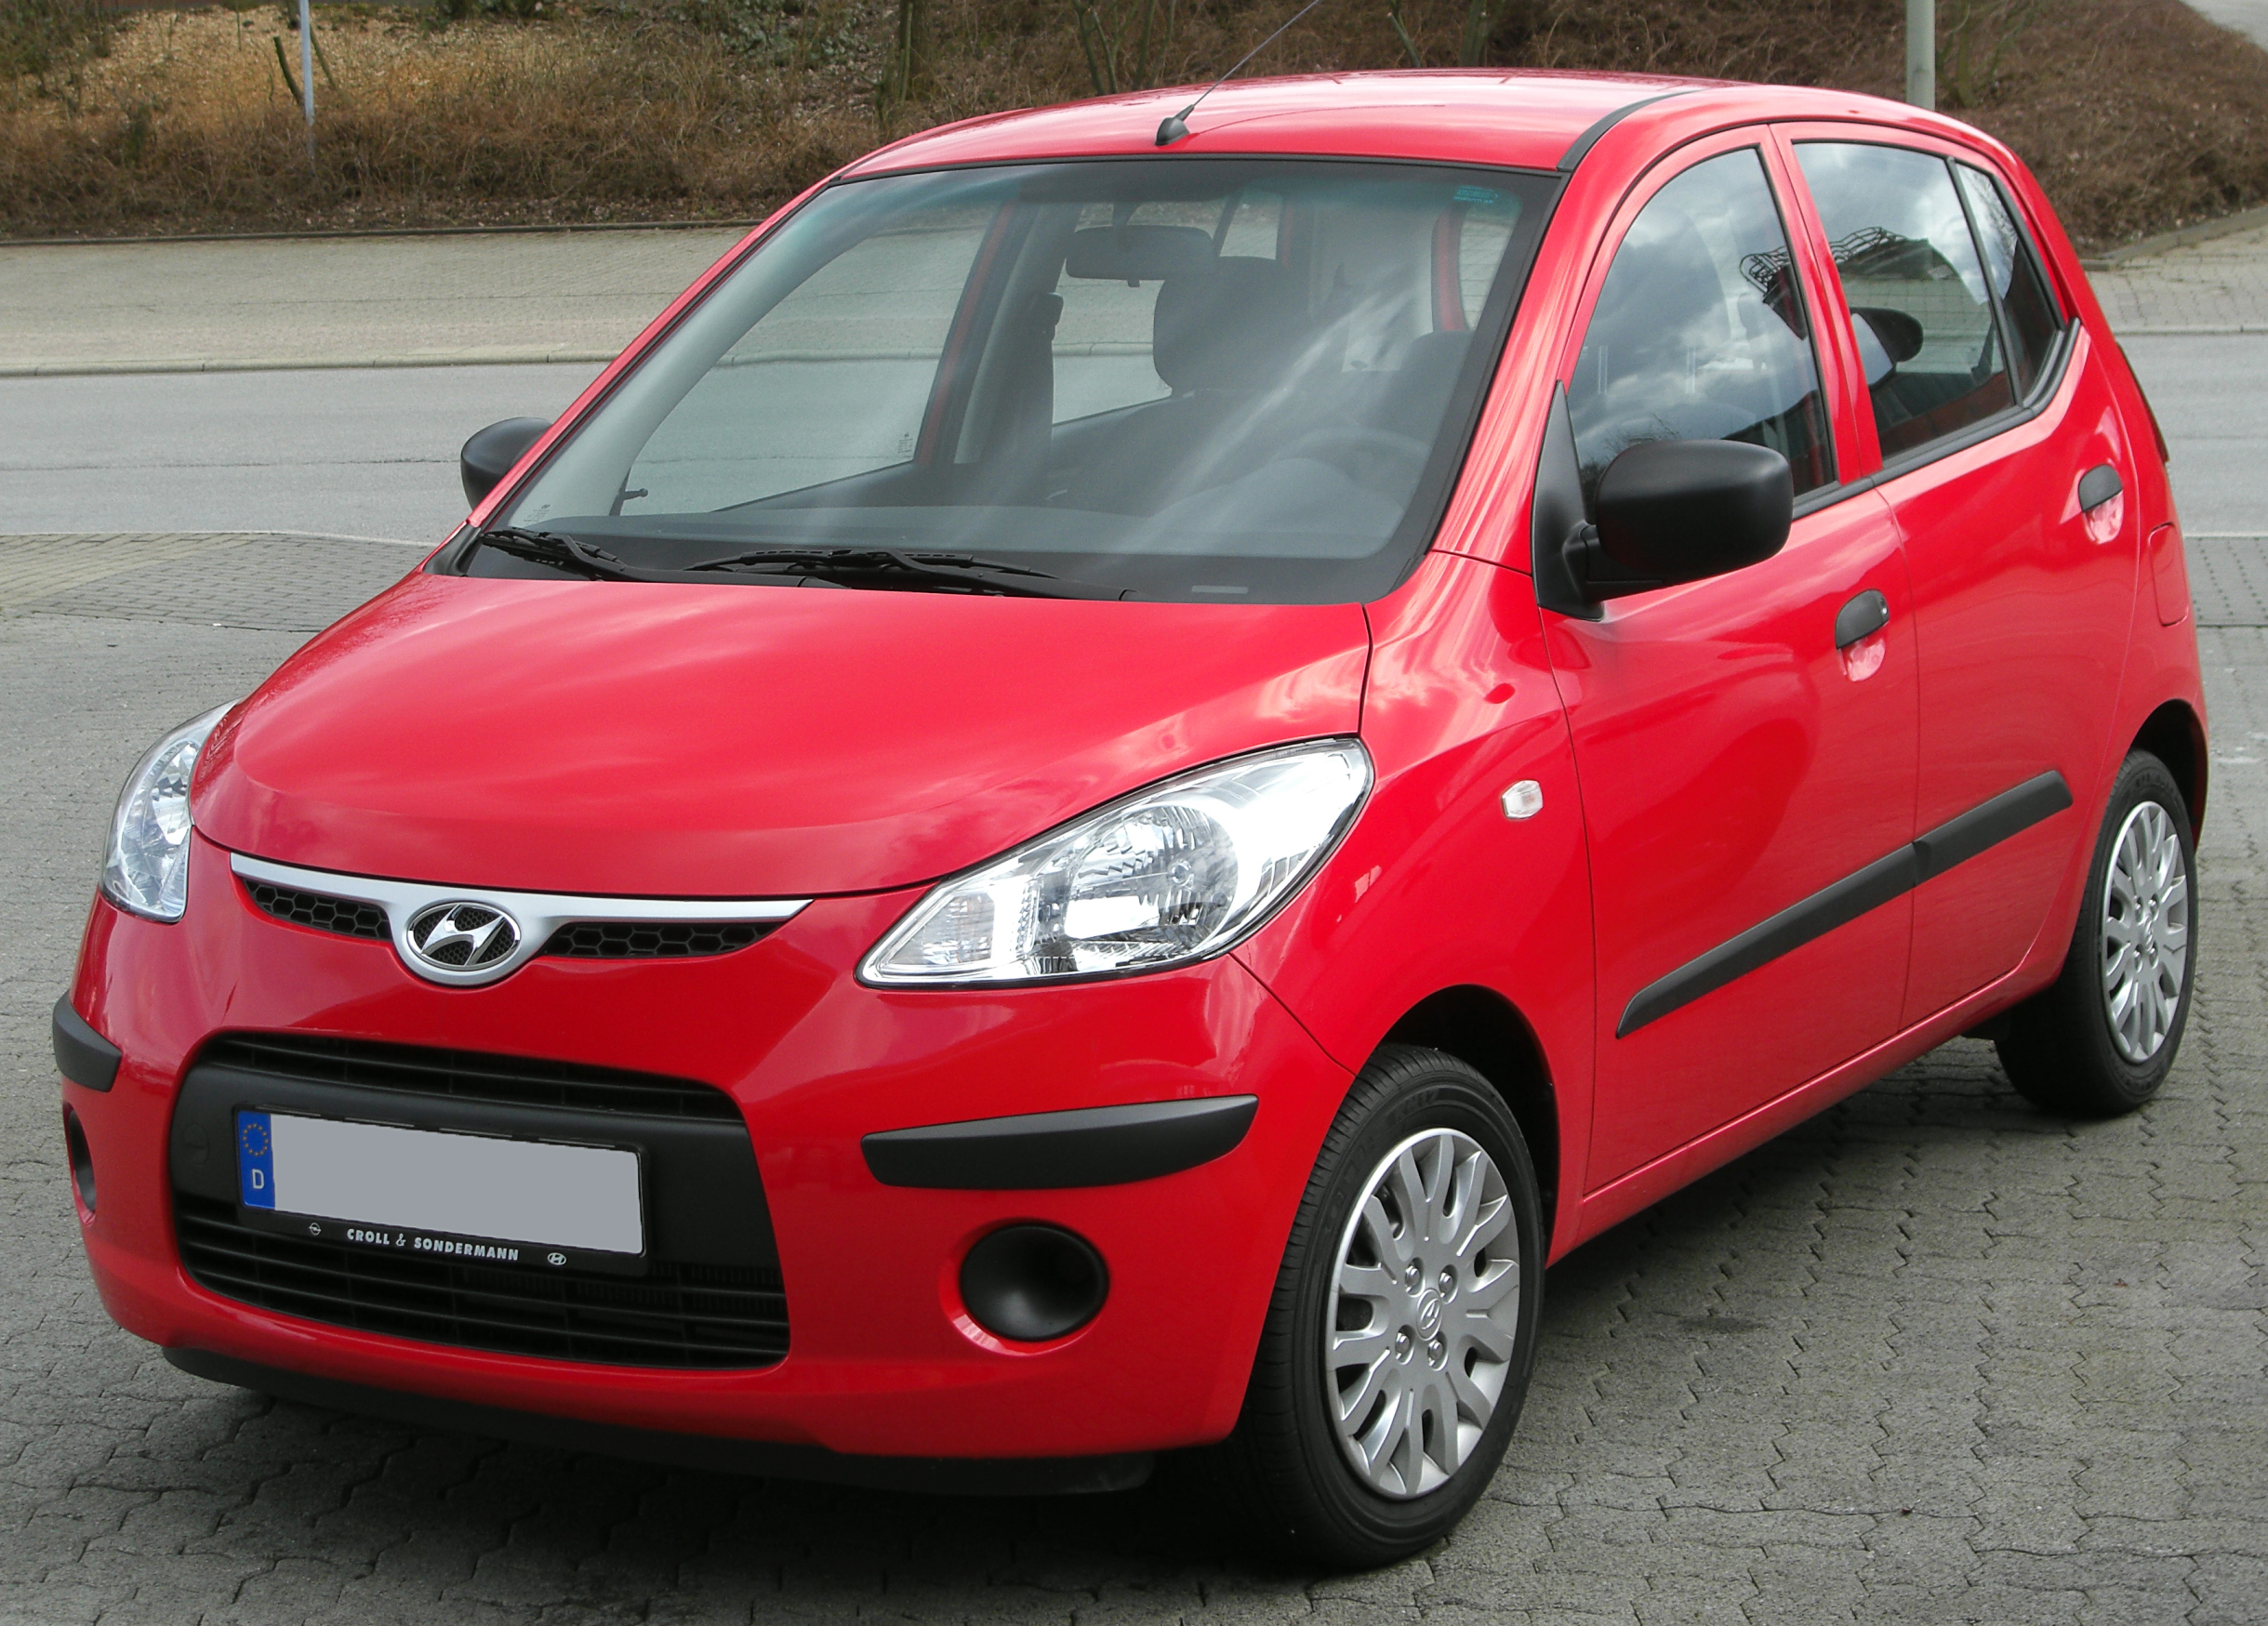 Pictures of hyundai i10 #11